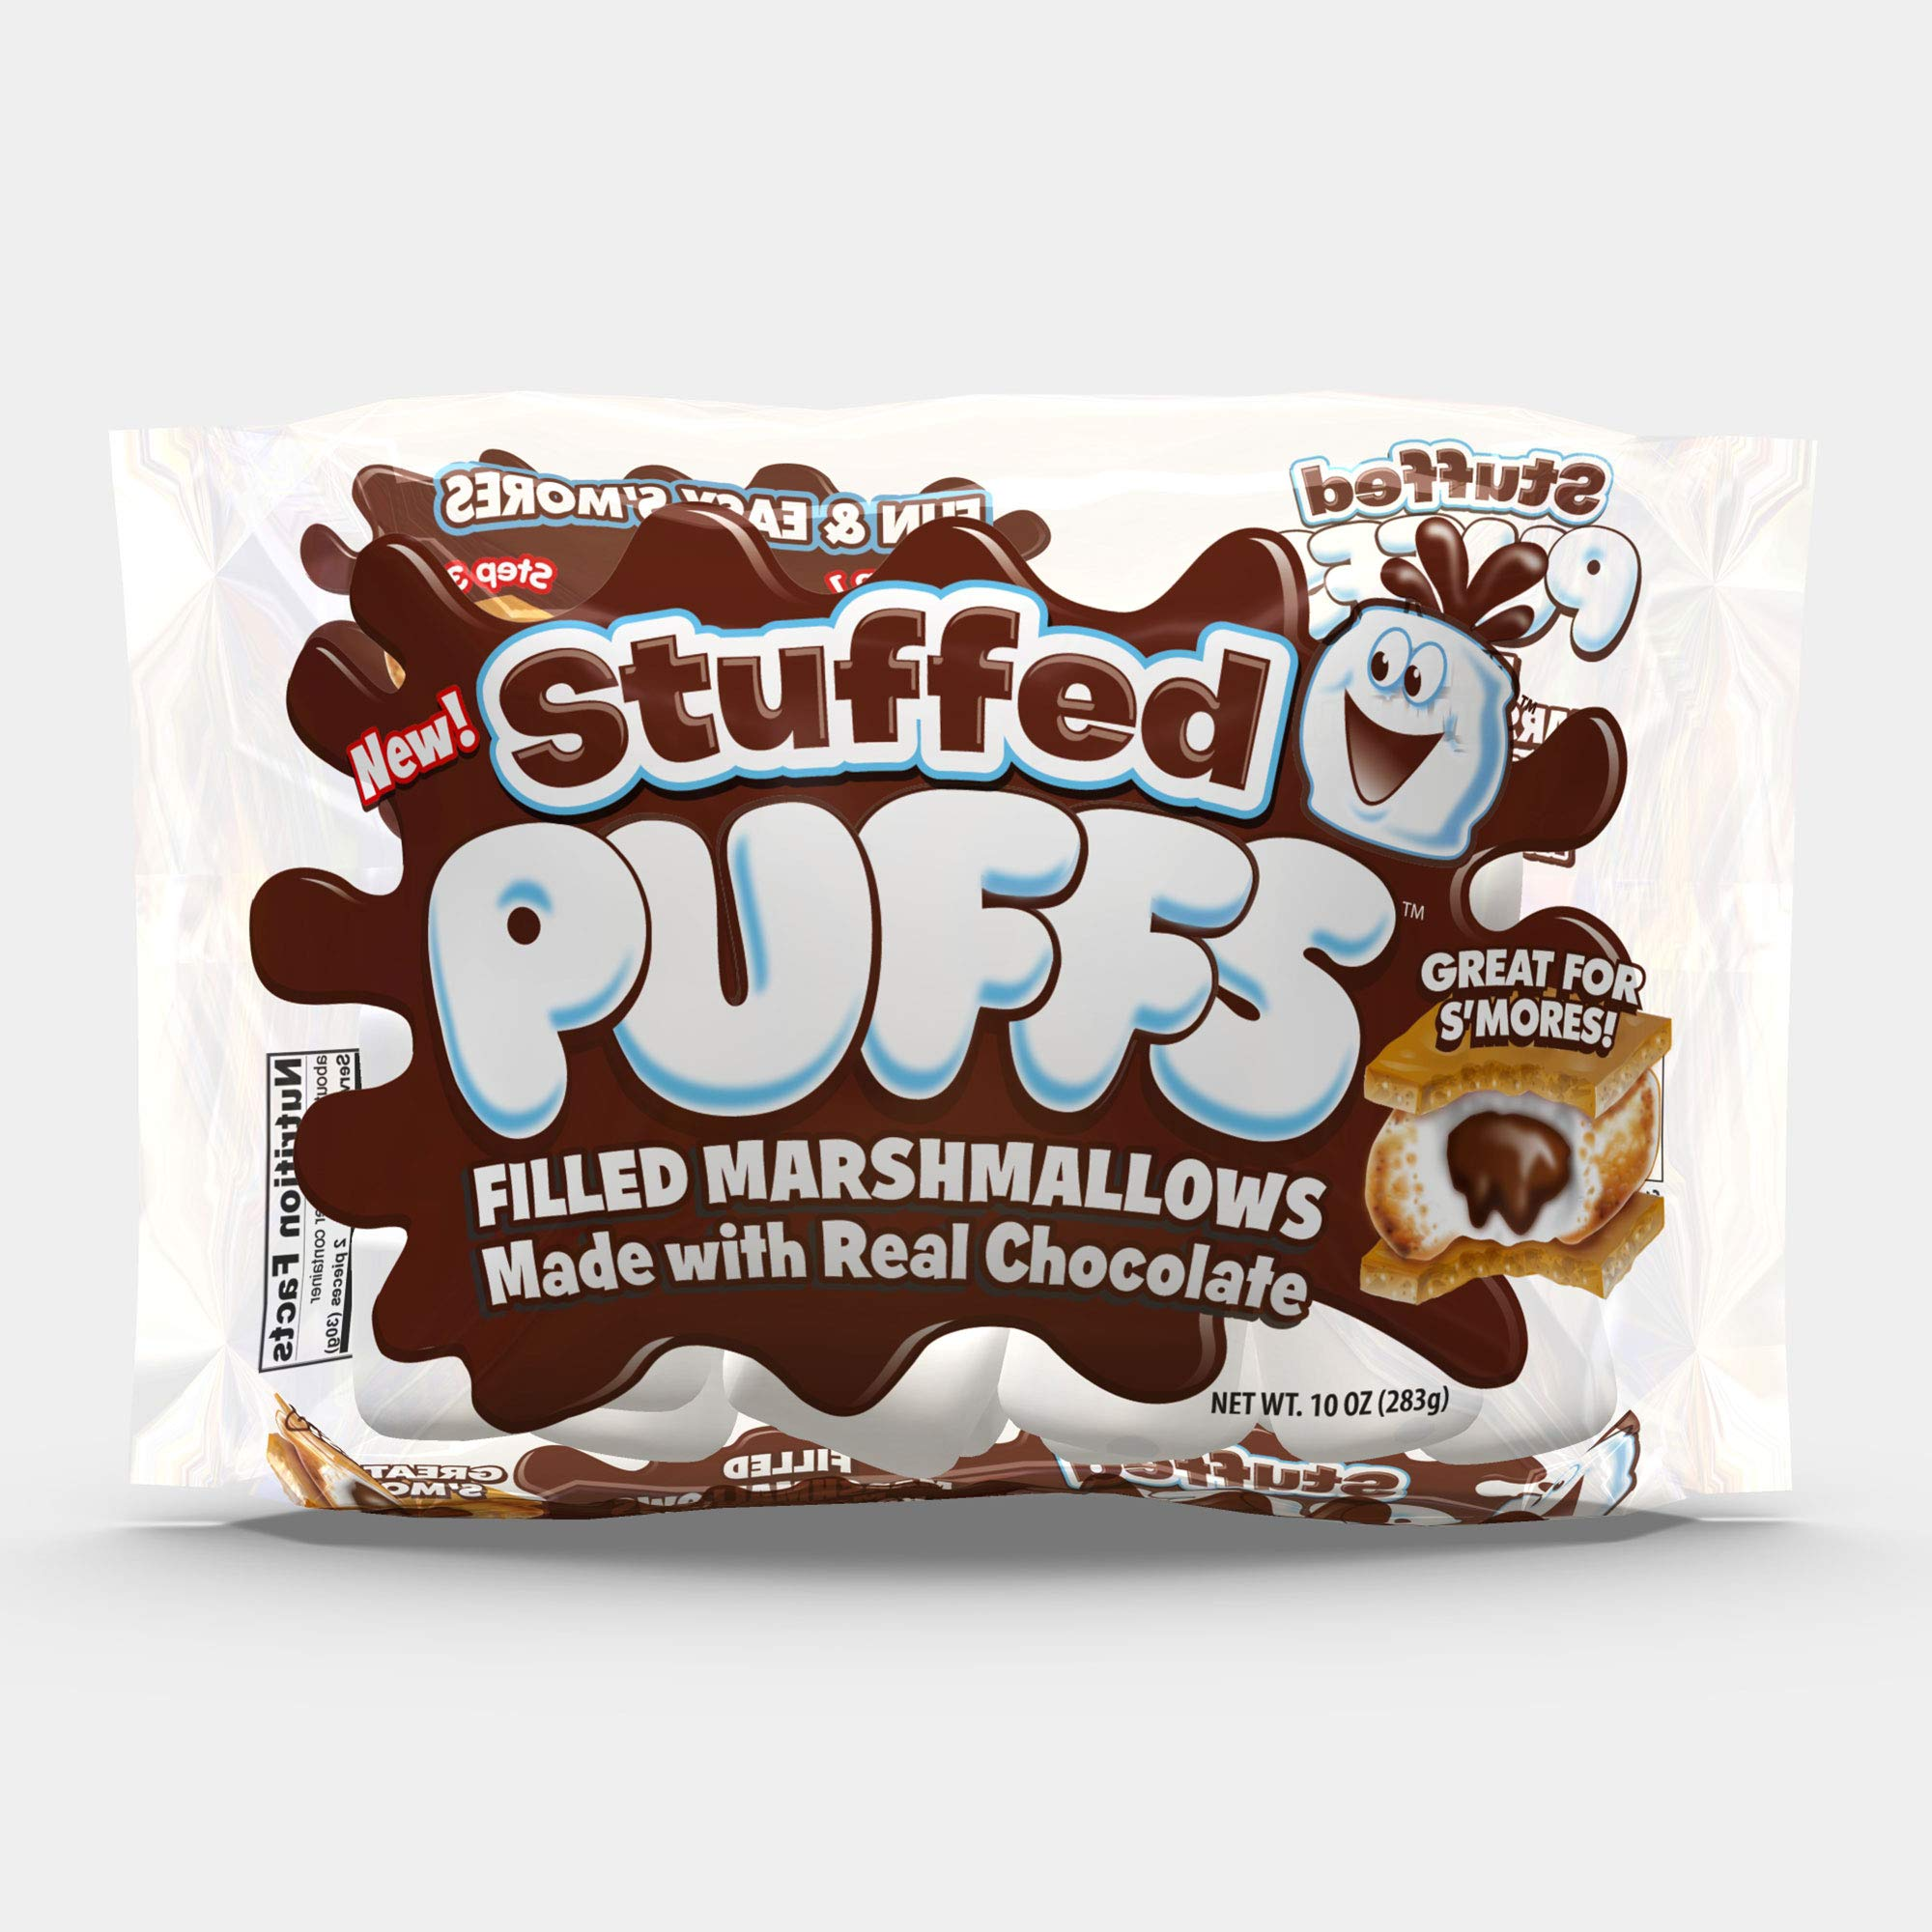 Stuffed Puffs, Chocolate Filled Marshmallows (10 oz bag, Pack of 2) by Stuffed Puffs